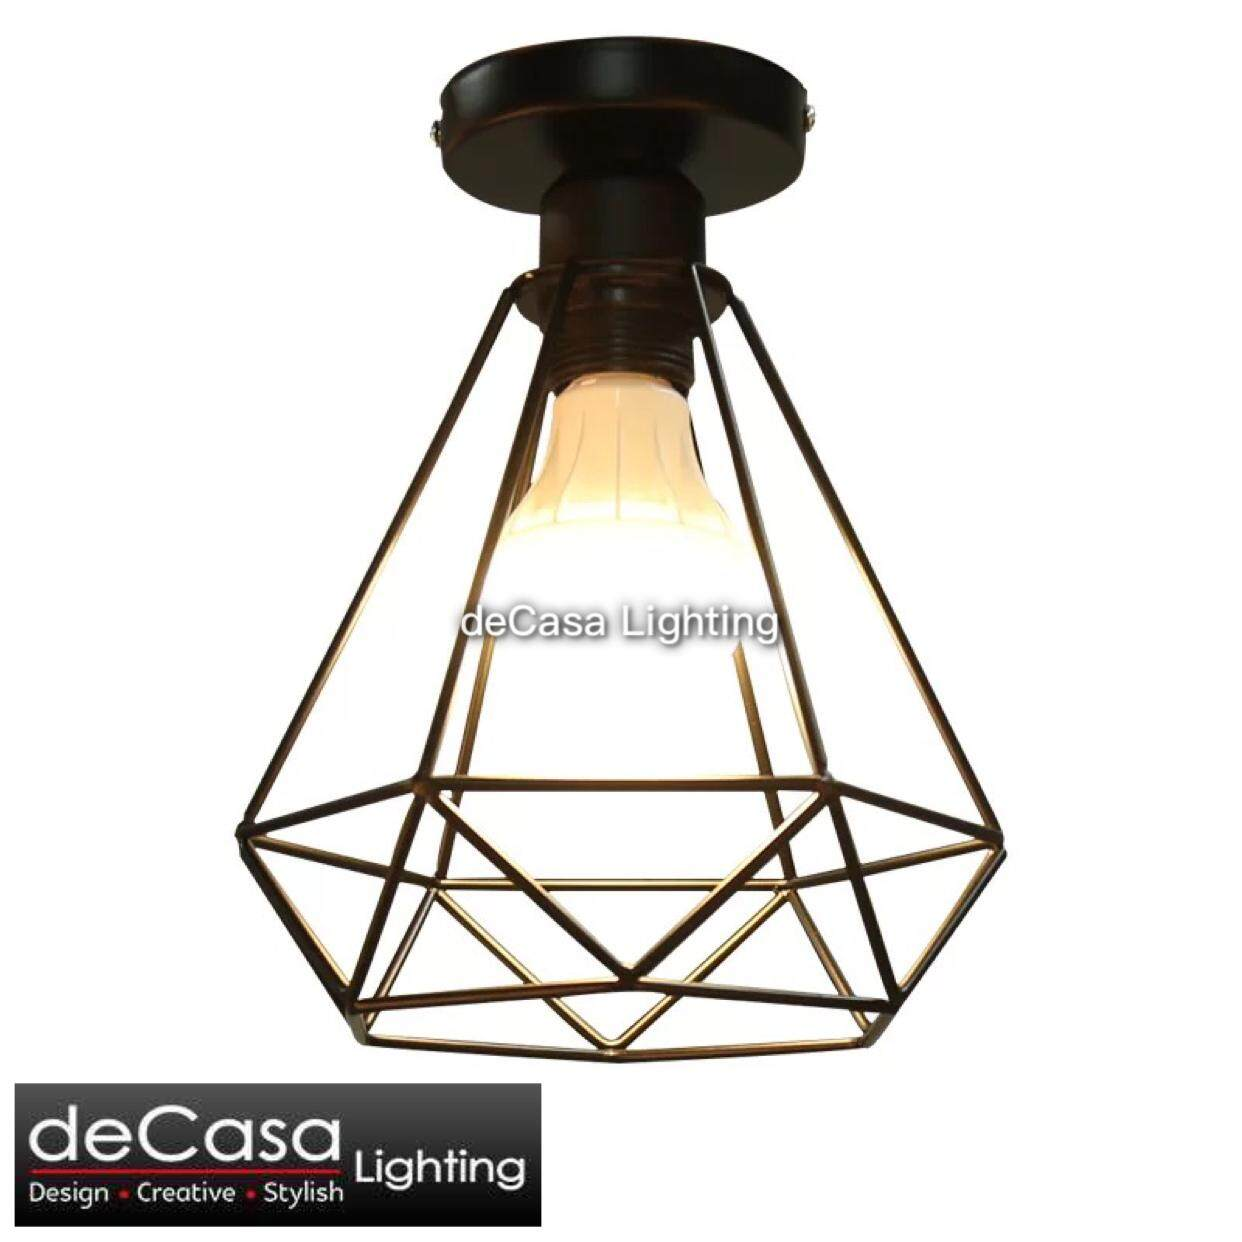 Ready Stock Black Loft Hanging Light Best Seller DECASA Pendant Light Ceiling Lamp Dream Light Decoration Table Lamp (JL-MJ04)